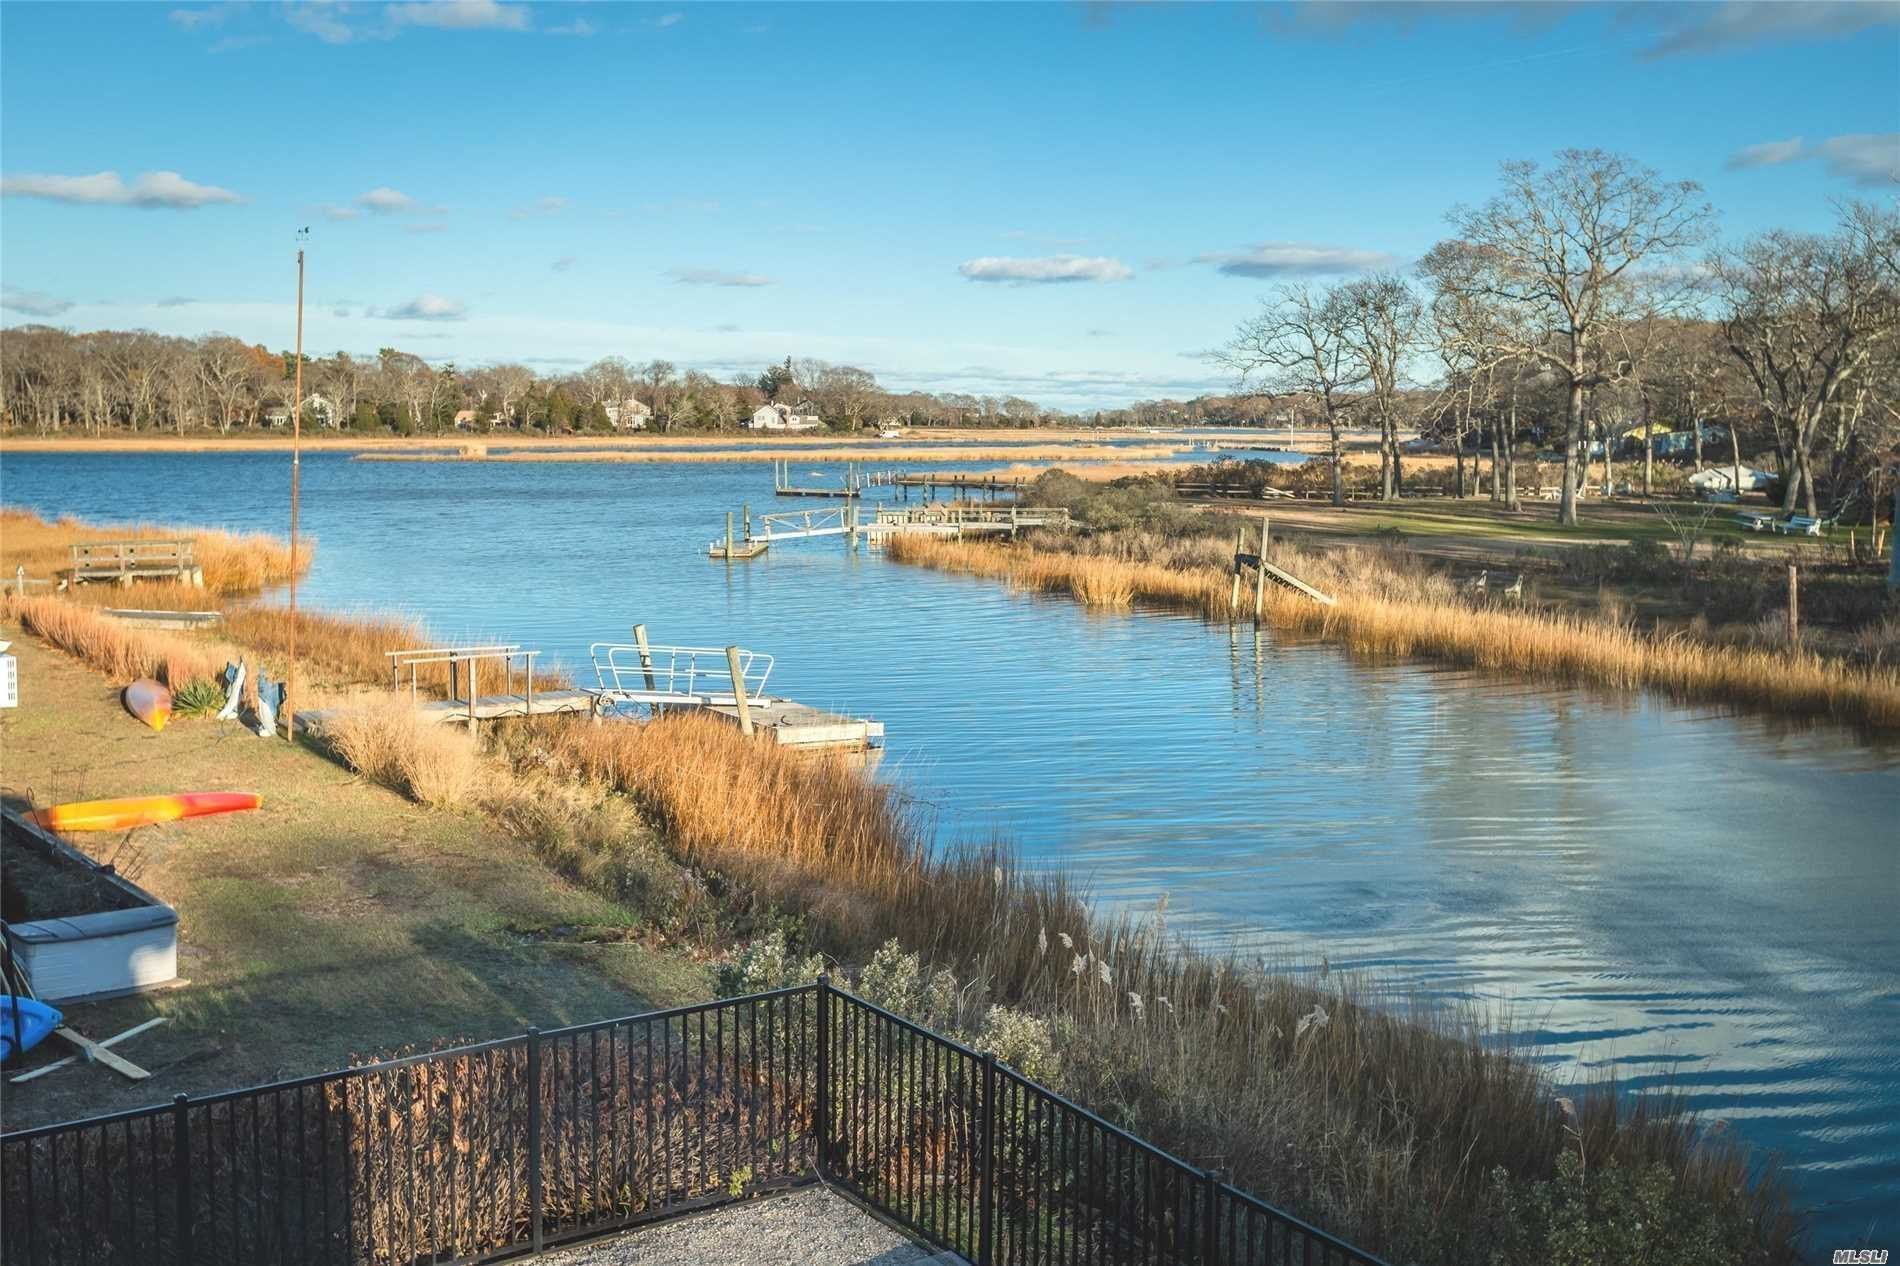 Chic, brand new renovation on stunning estuary with private dock and pool. Sun and dining deck. Beautifully finished interior features Viking appliances, Waterworks fixtures, wood floors, tiled baths. All new HVAC, roof and siding . Attention detail throughout this delightful turn-key how with Fleet's Neck beach rights!!!!!